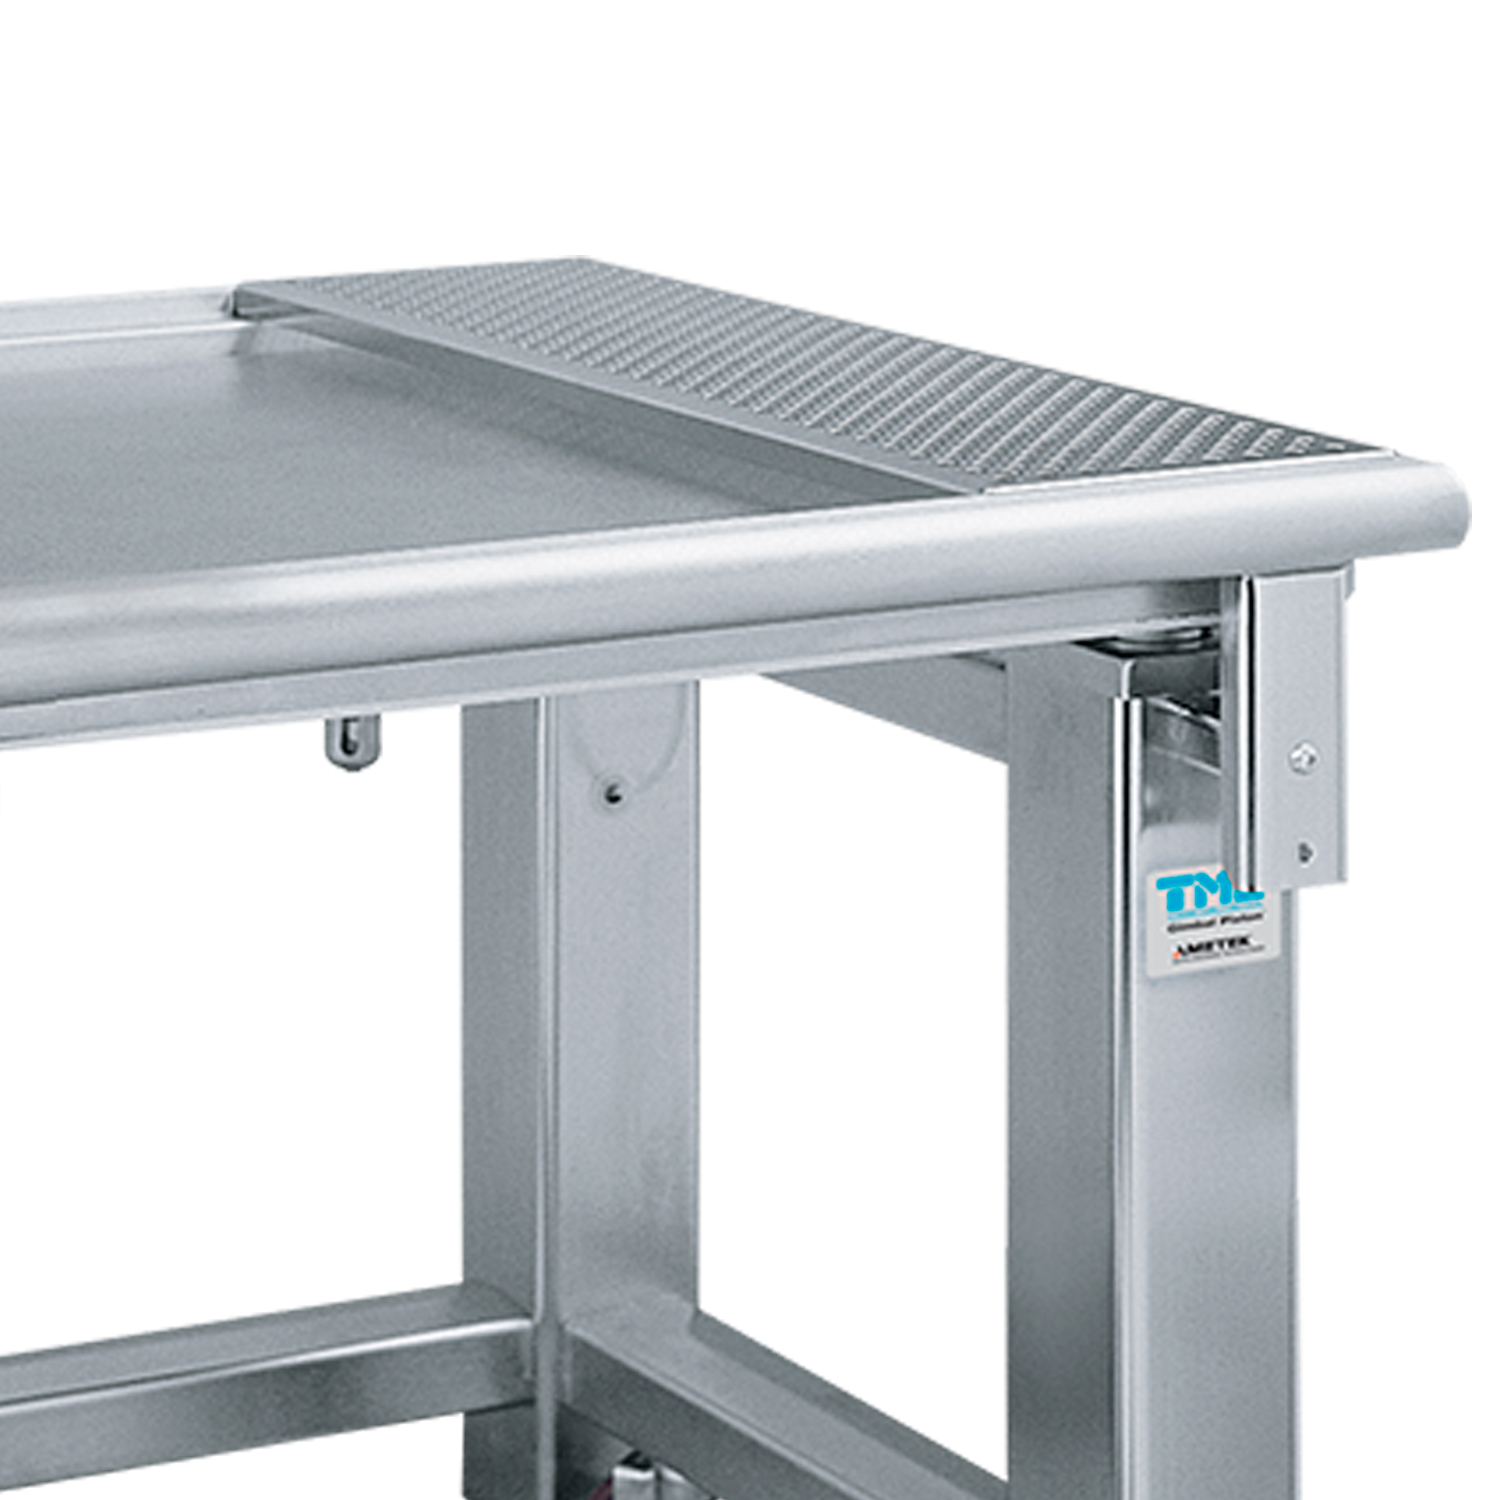 Front Support Bar of ClassOne™ Cleanroom Vibration Isolation Table